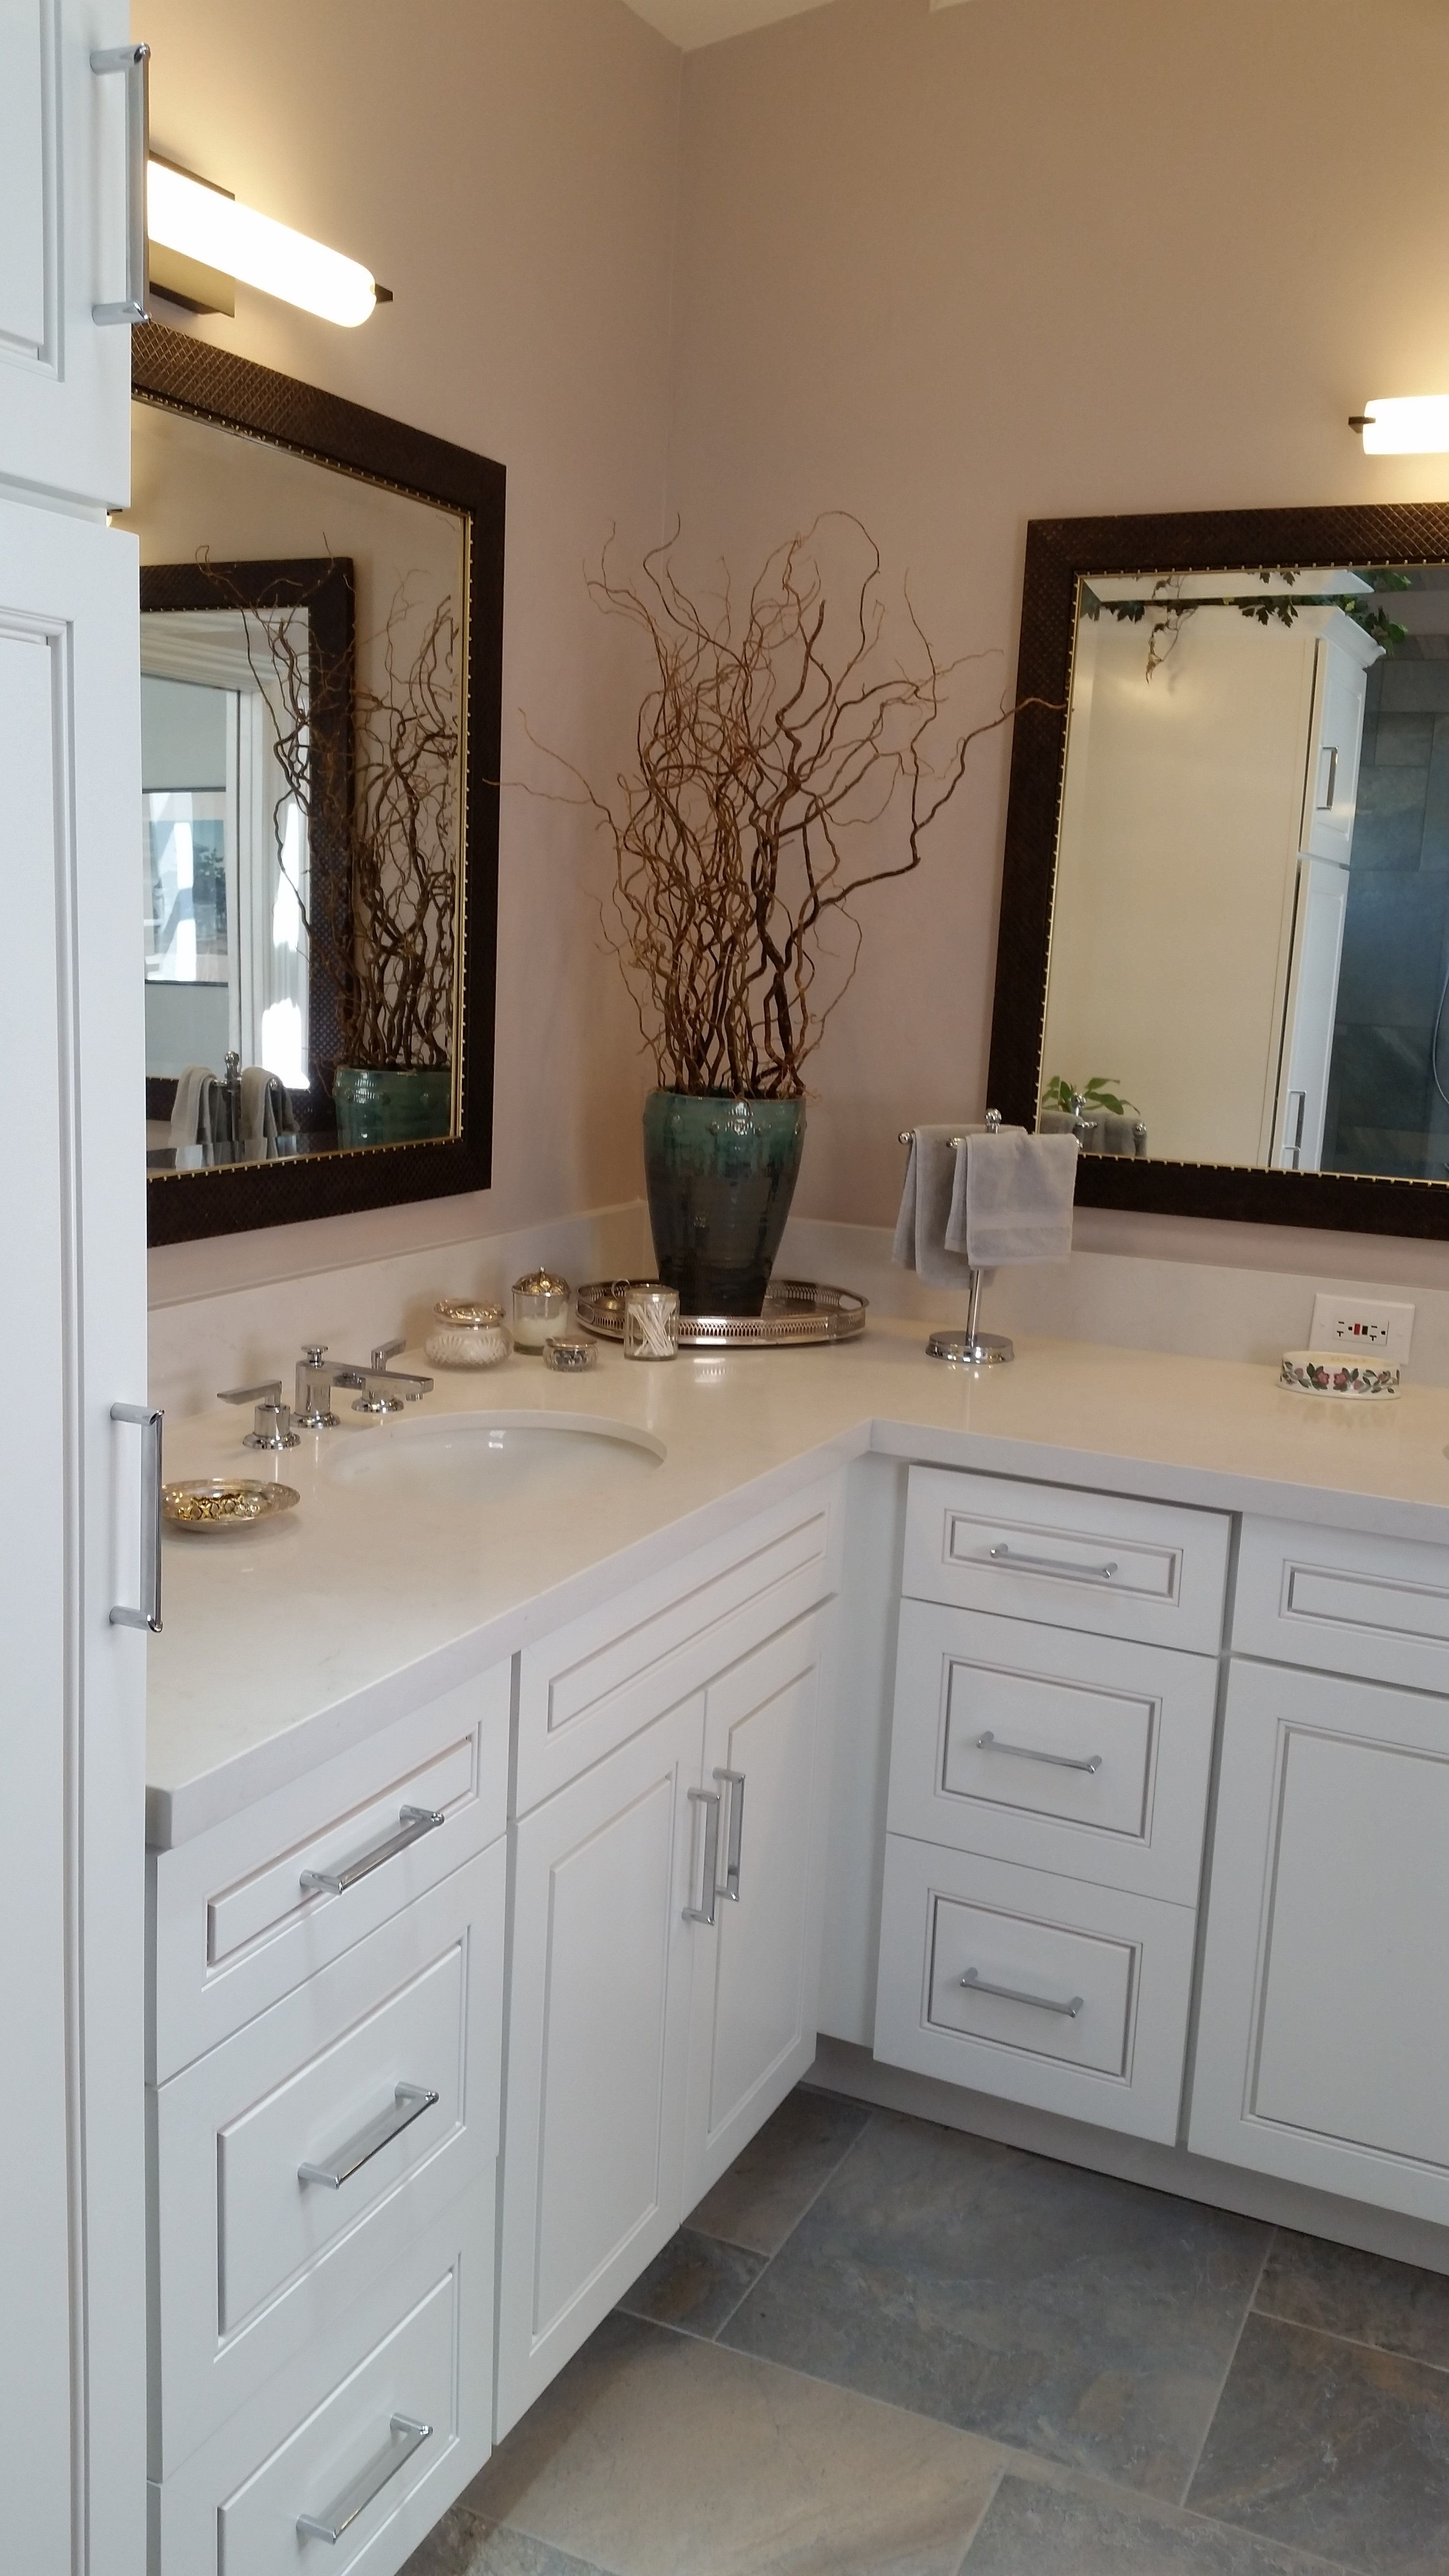 info kitchen lowes reviews drobek white diamond cabinets cost